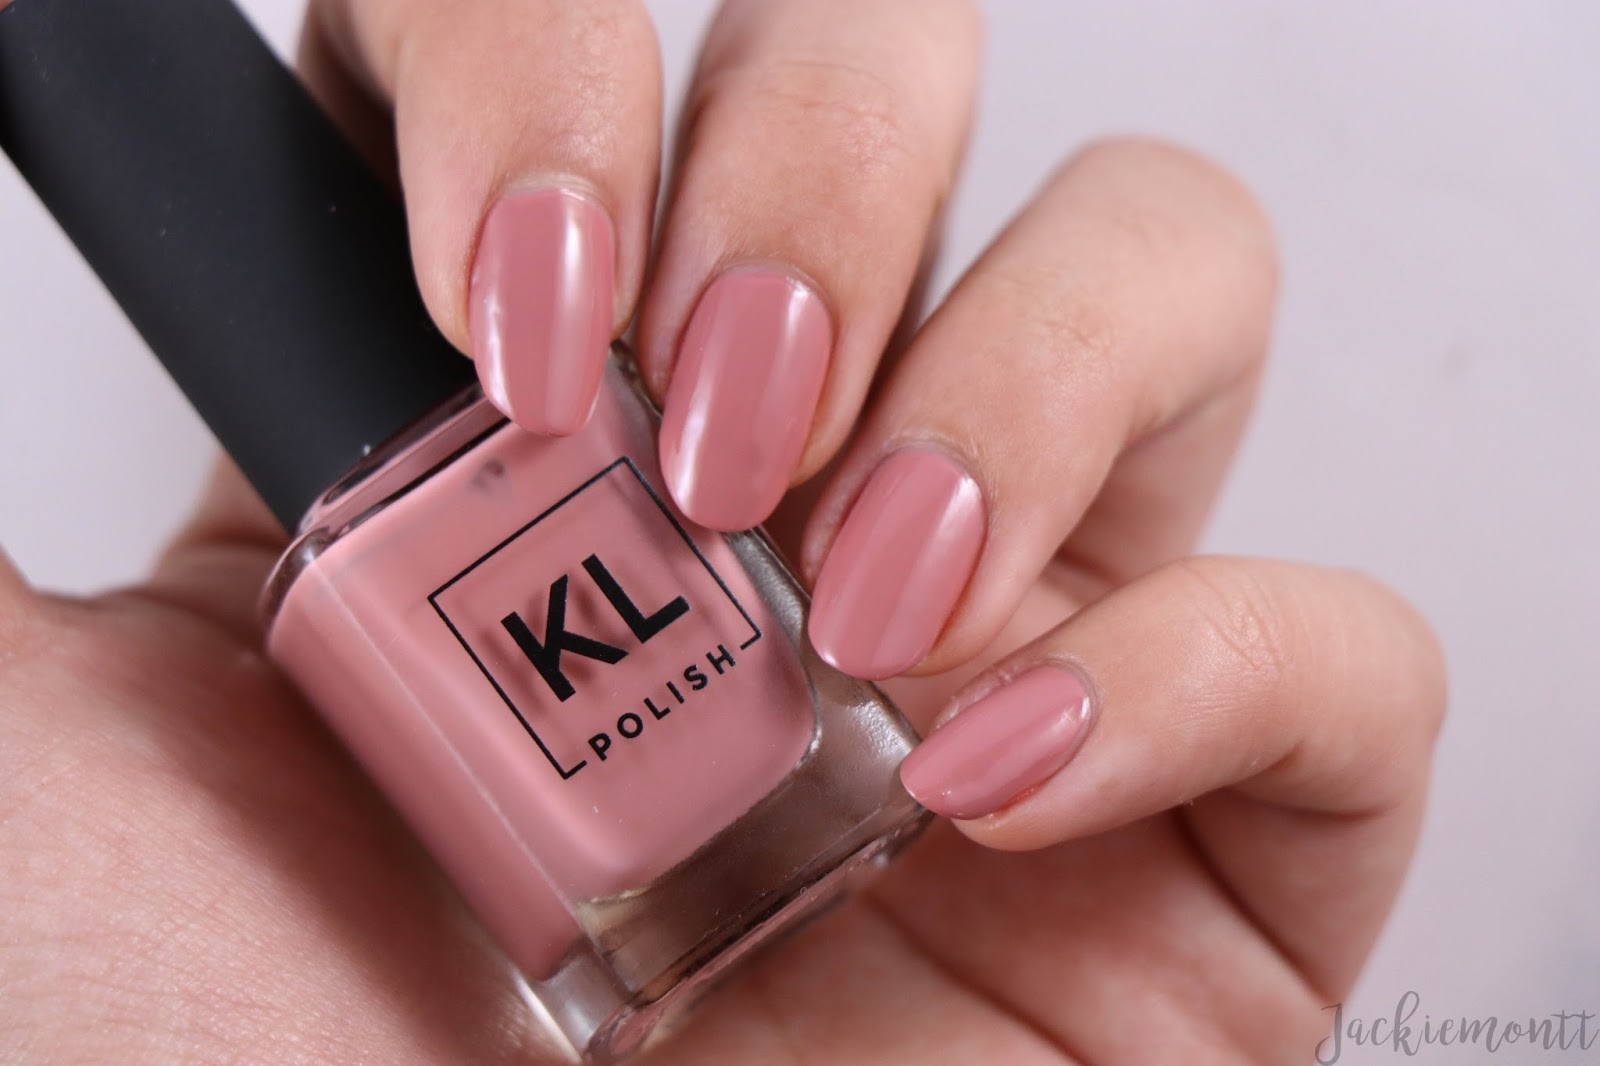 KL Polish | 💋 Lips & Tips Collection Review and Swatches - JACKIEMONTT